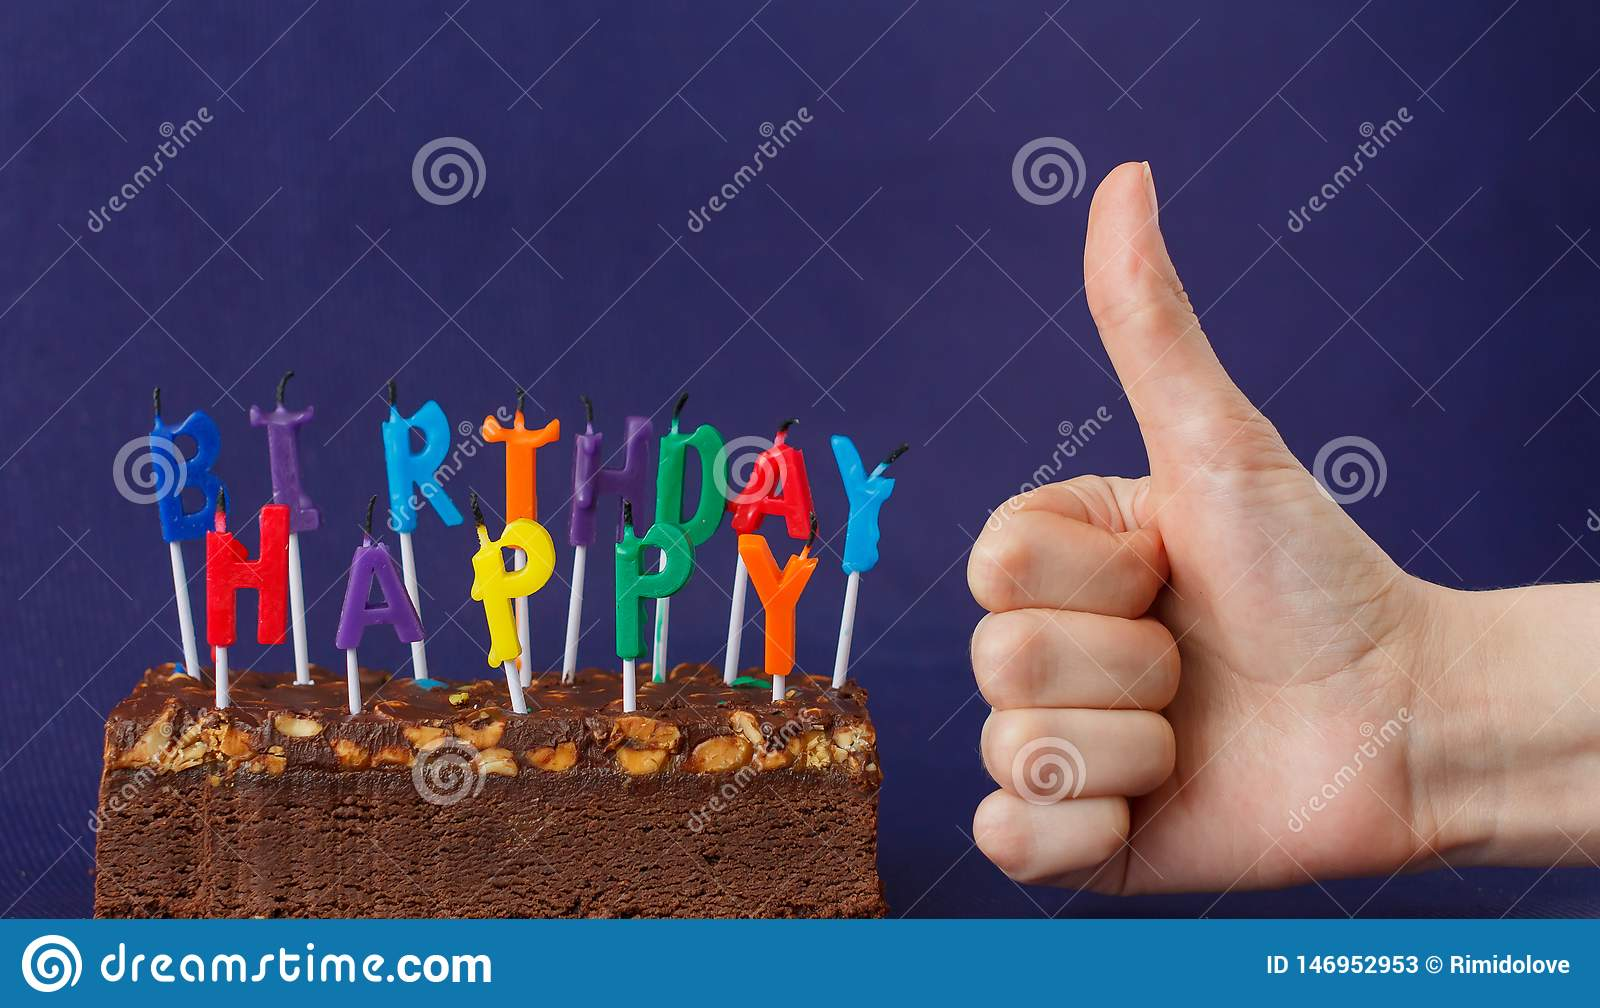 Happy Birthday Brownie Cake with Peanuts, Salted Caramel and Colorful Unlighted Candles on the Violet Background. Hand Shows Like